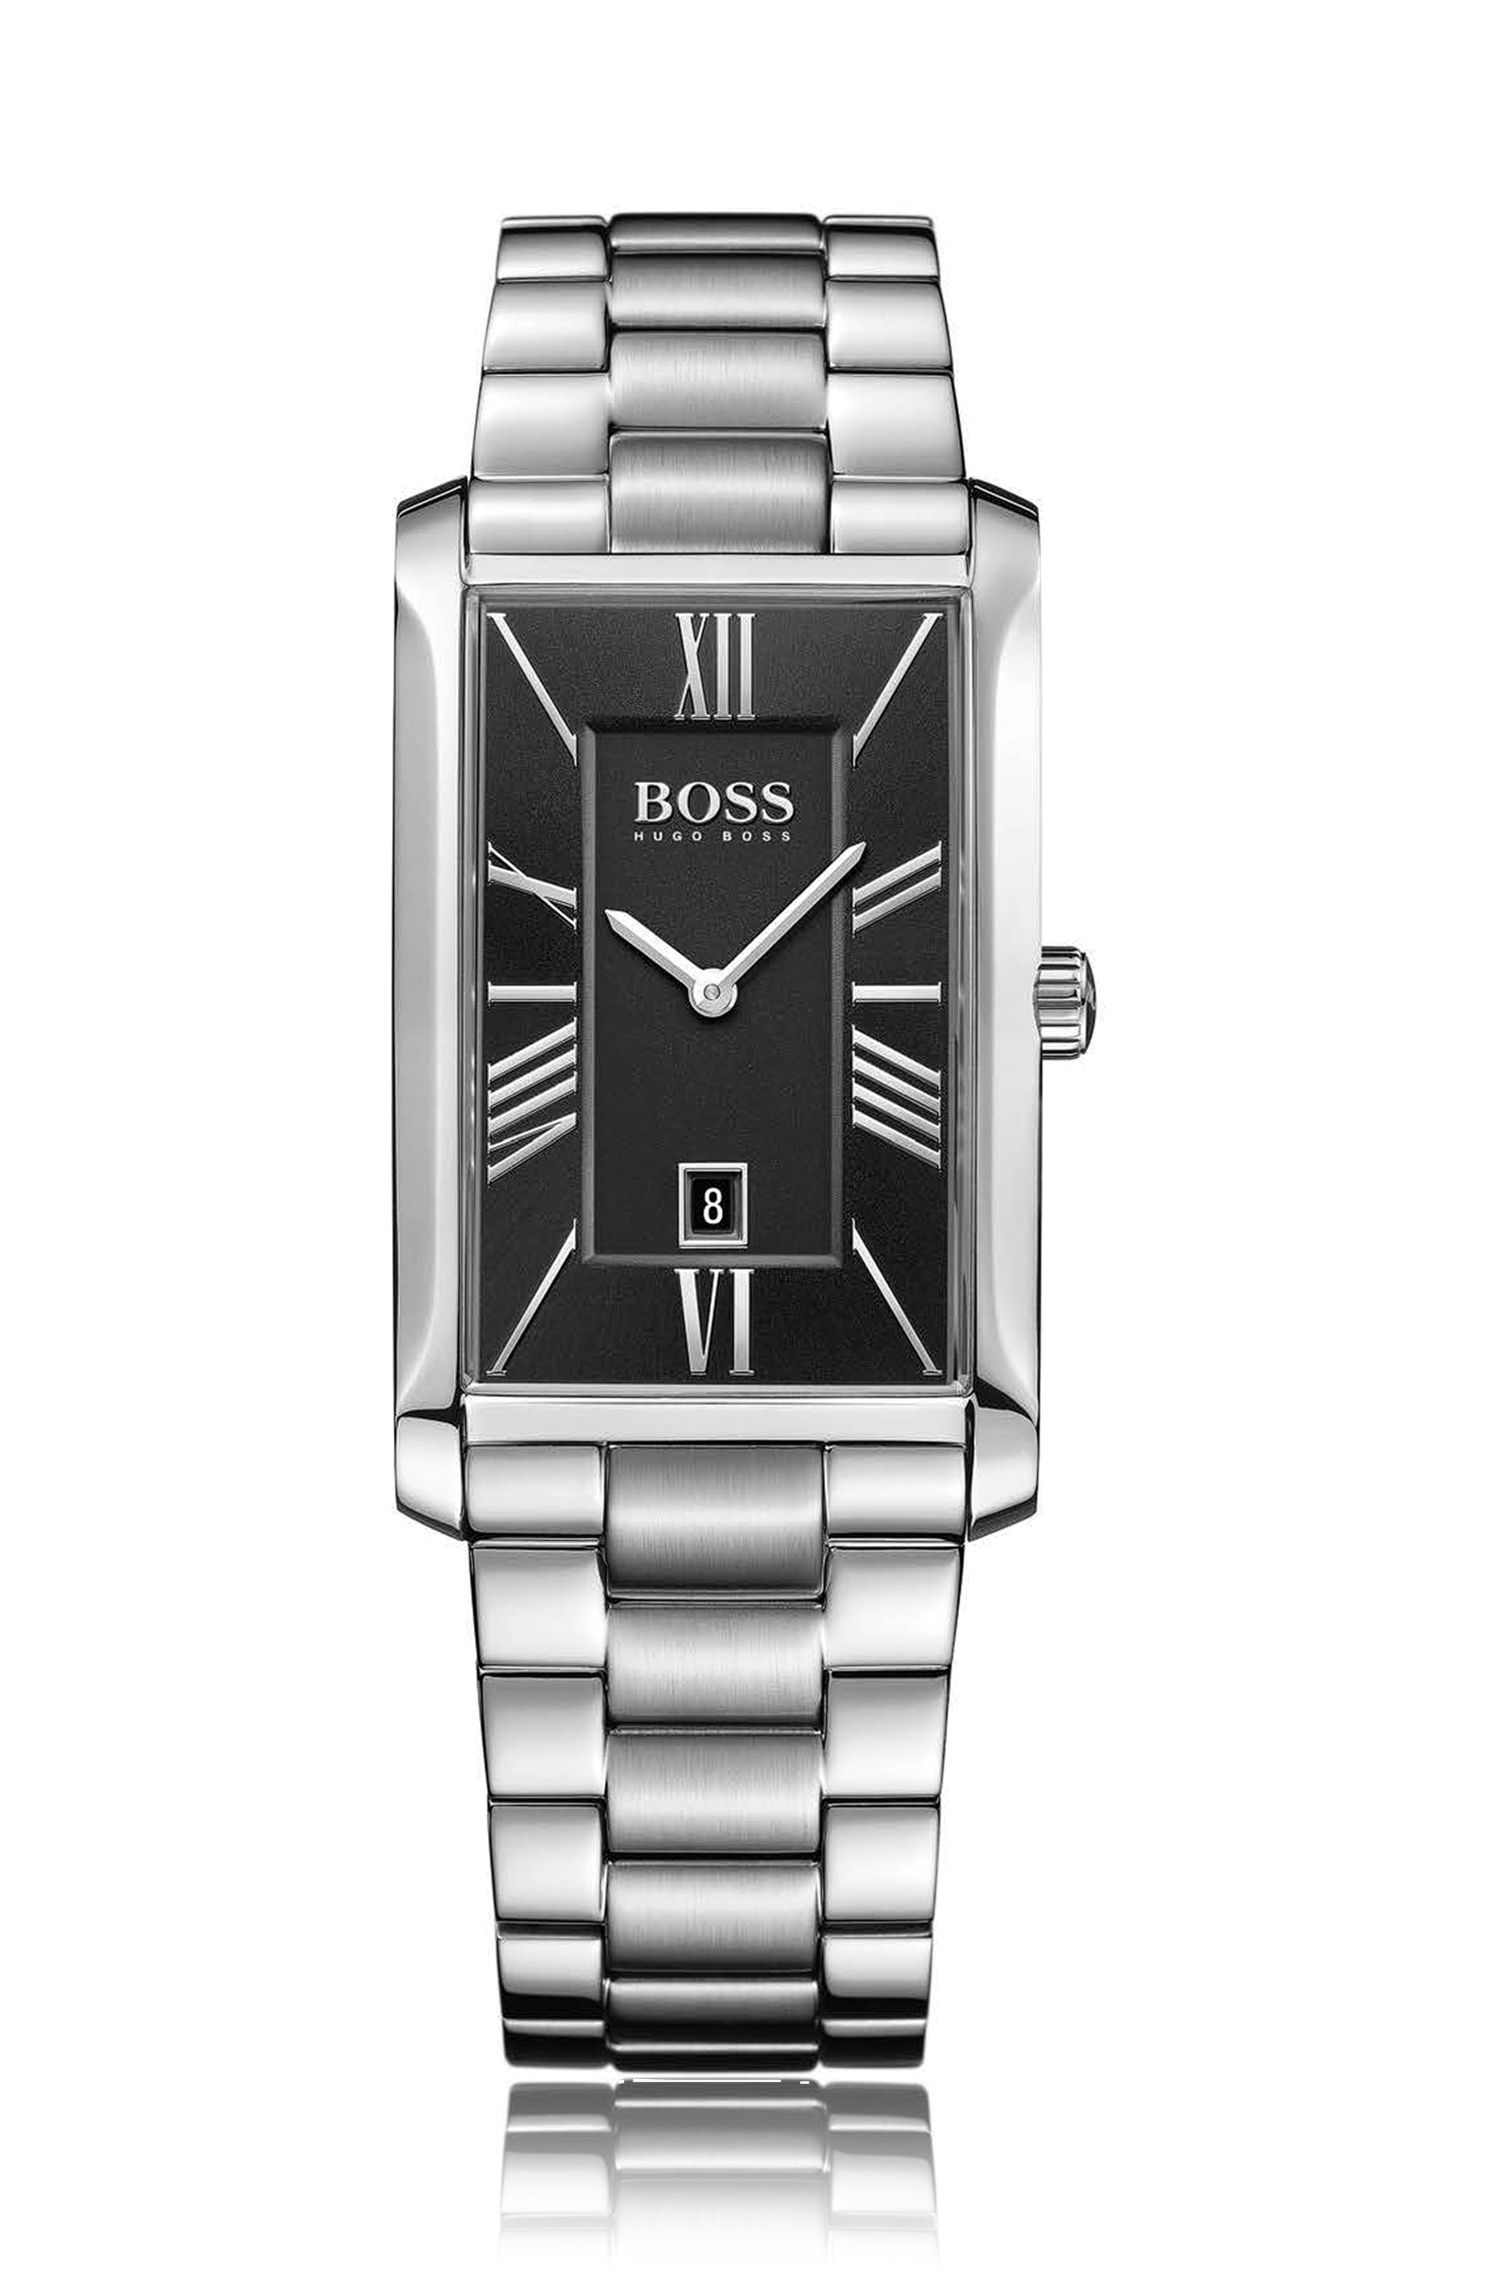 Brushed and polished stainless-steel watch with layered black dial